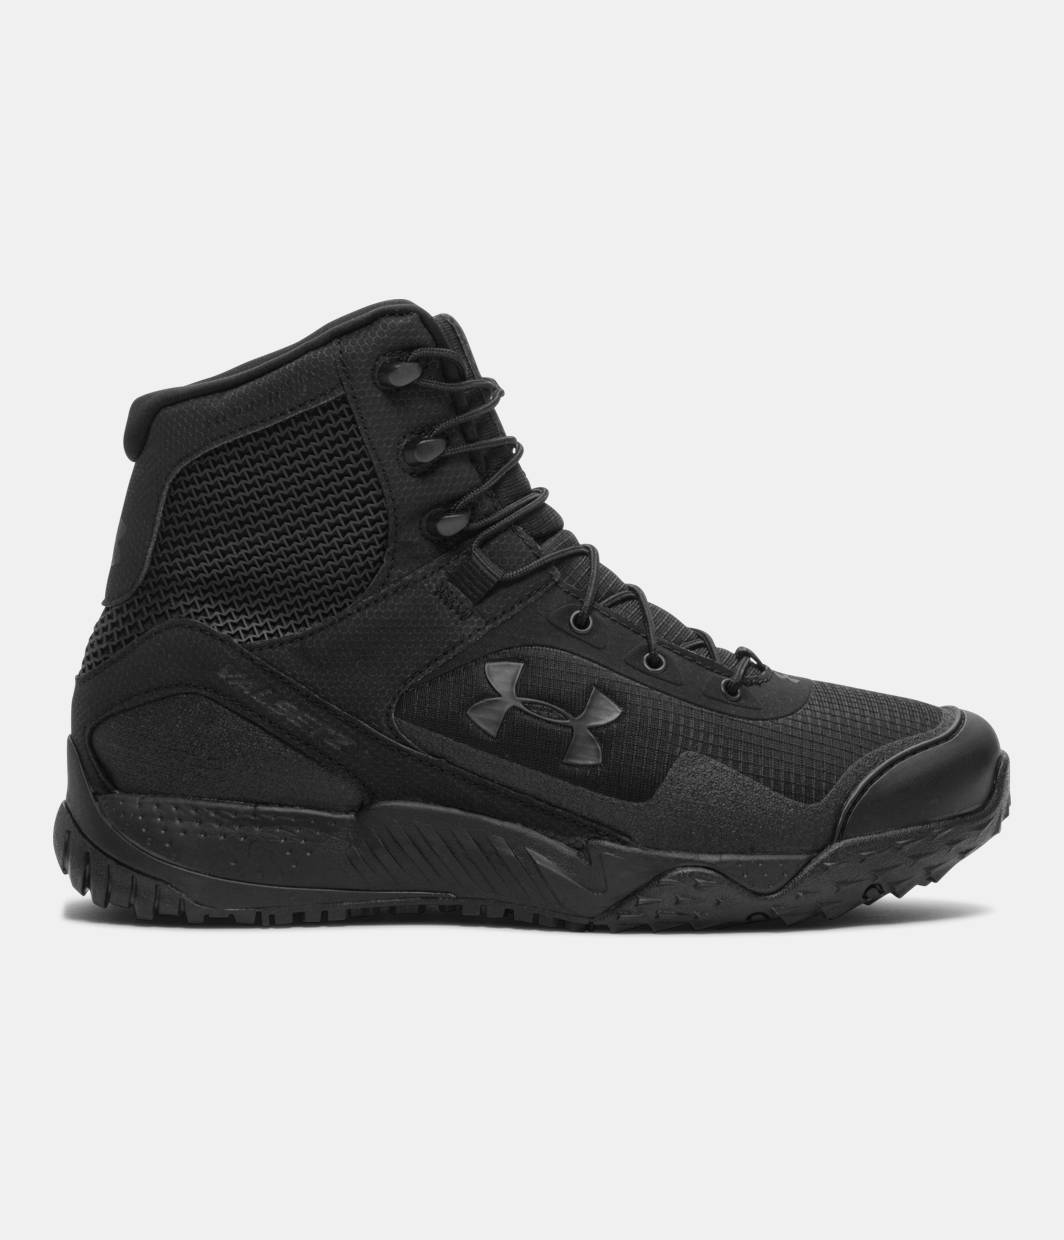 Cheap Under Armour Basketball Shoes | Cheap Under Armour Shoes | Under Armour Youth Shoes